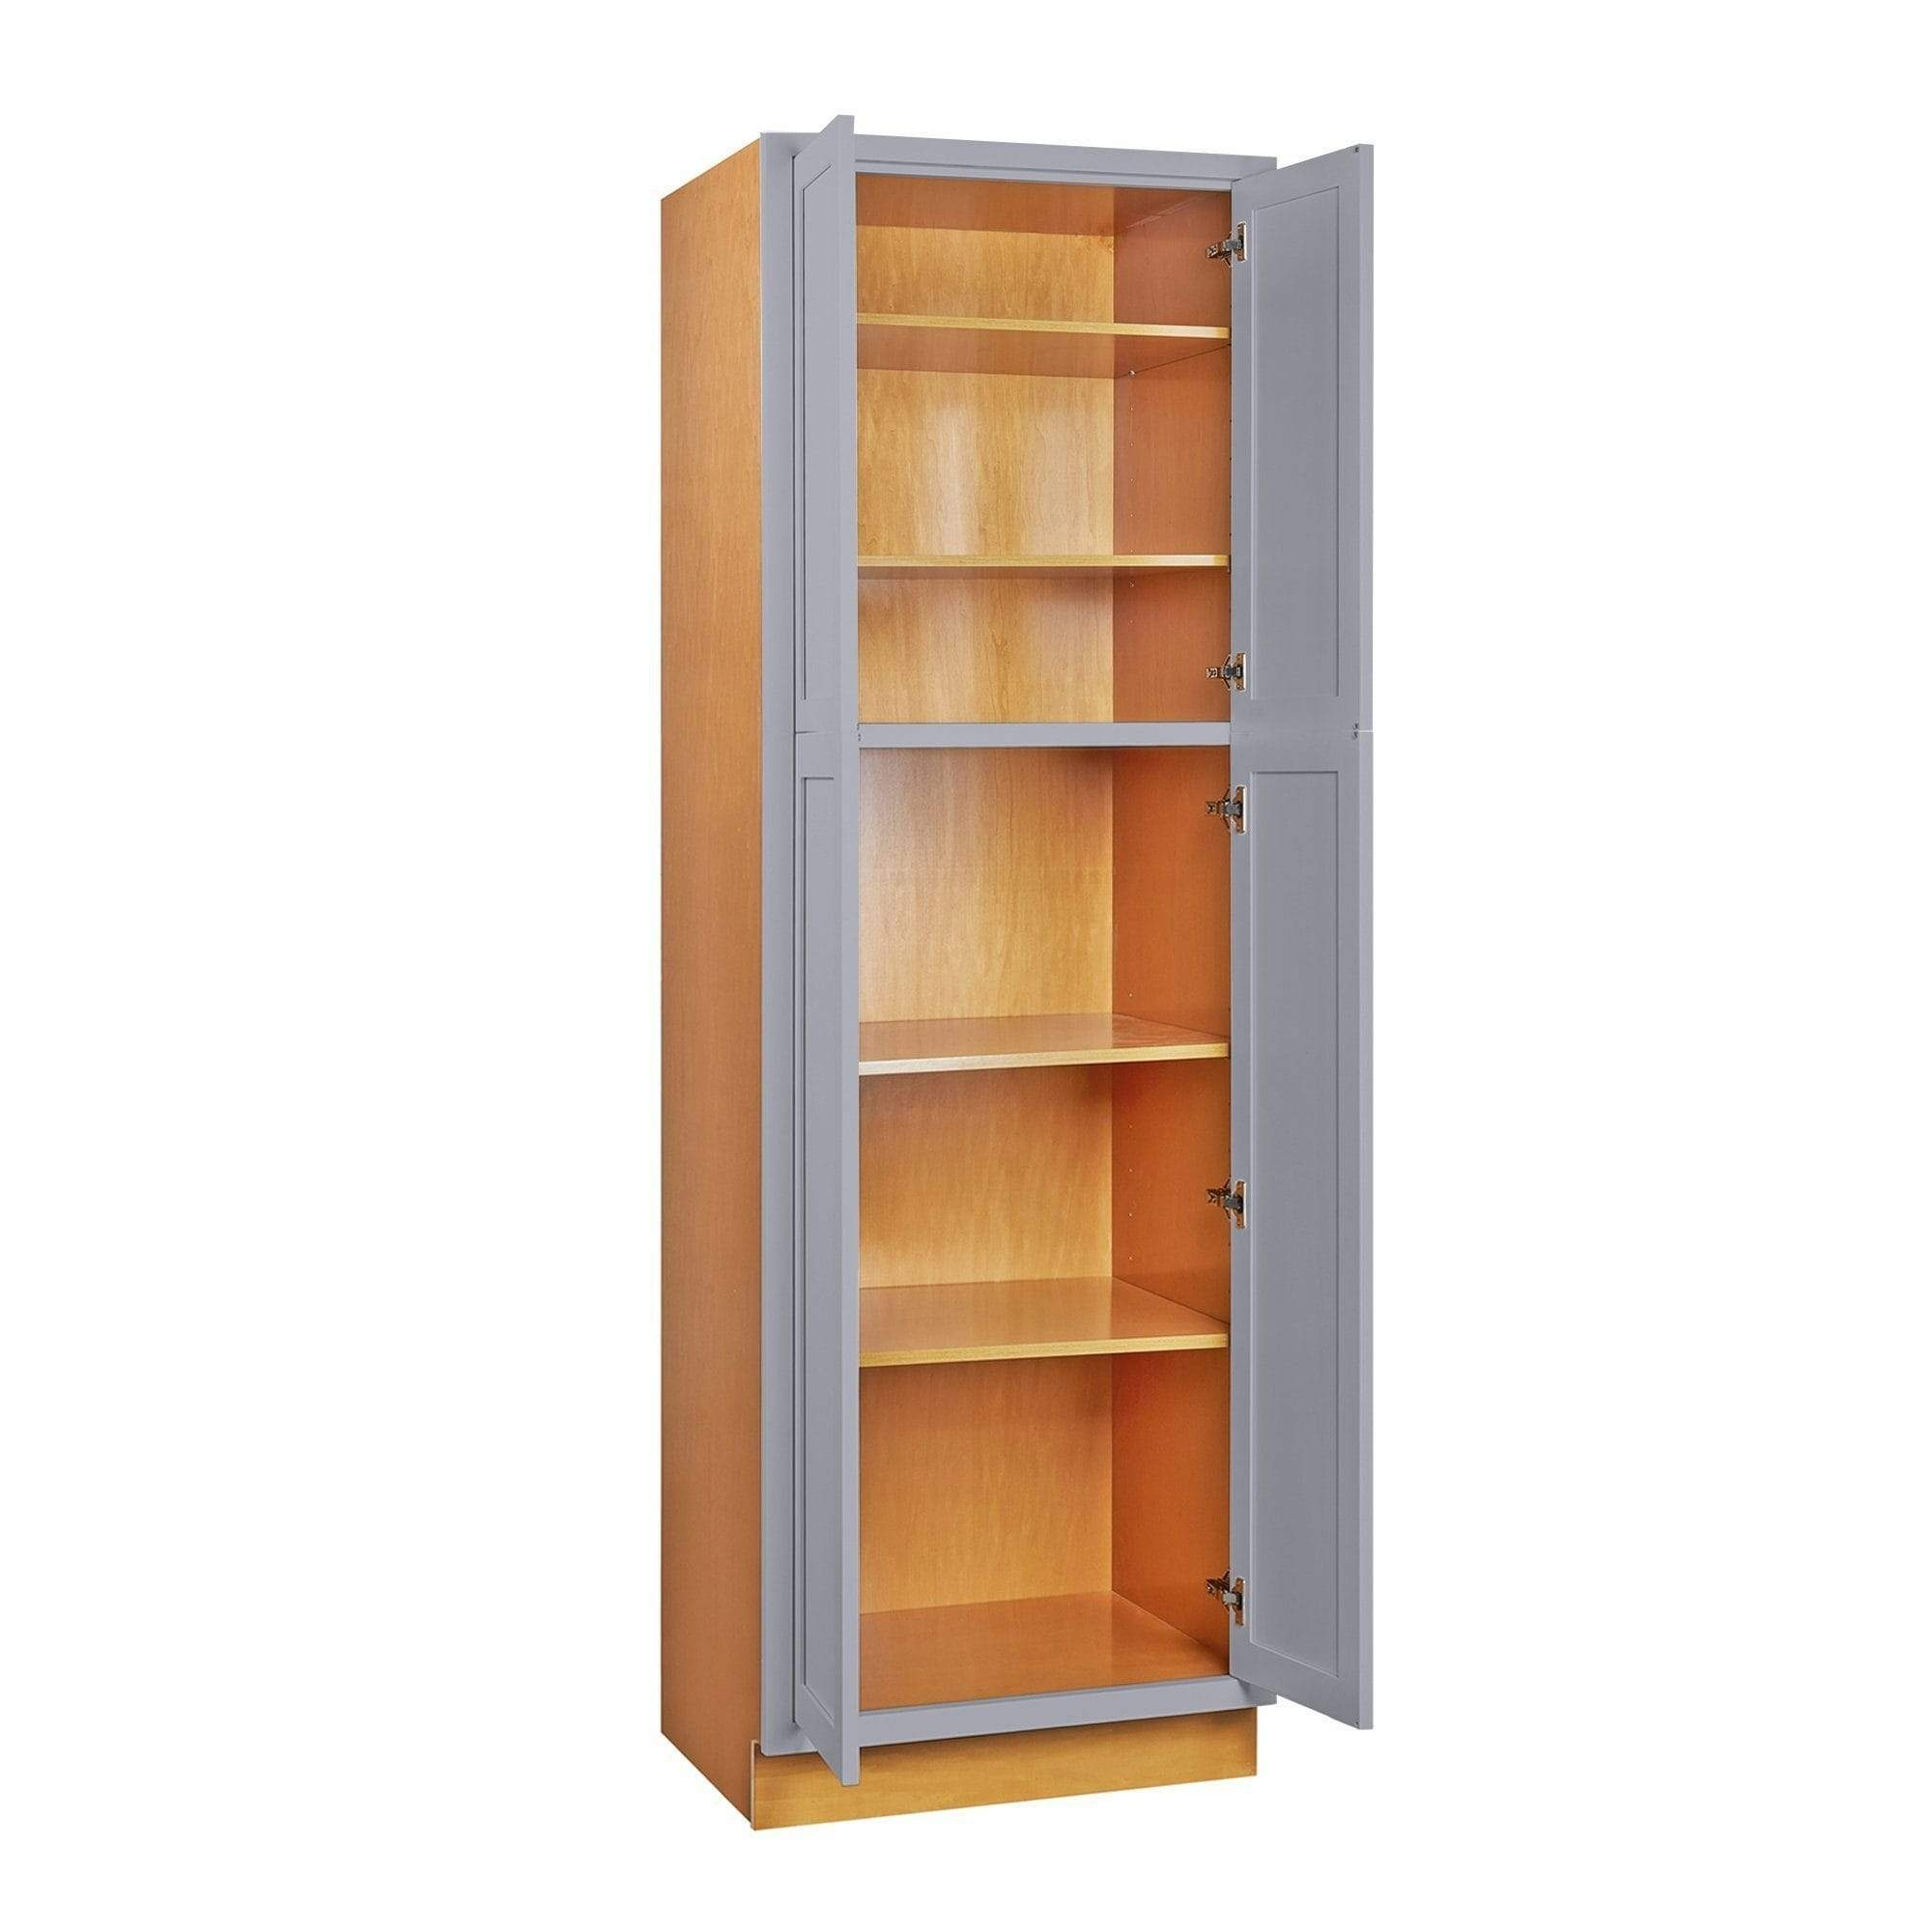 Pantry Light Gray Inset Shaker Cabinet 84 Tall 24 30 36 Wide Rta Wholesalers